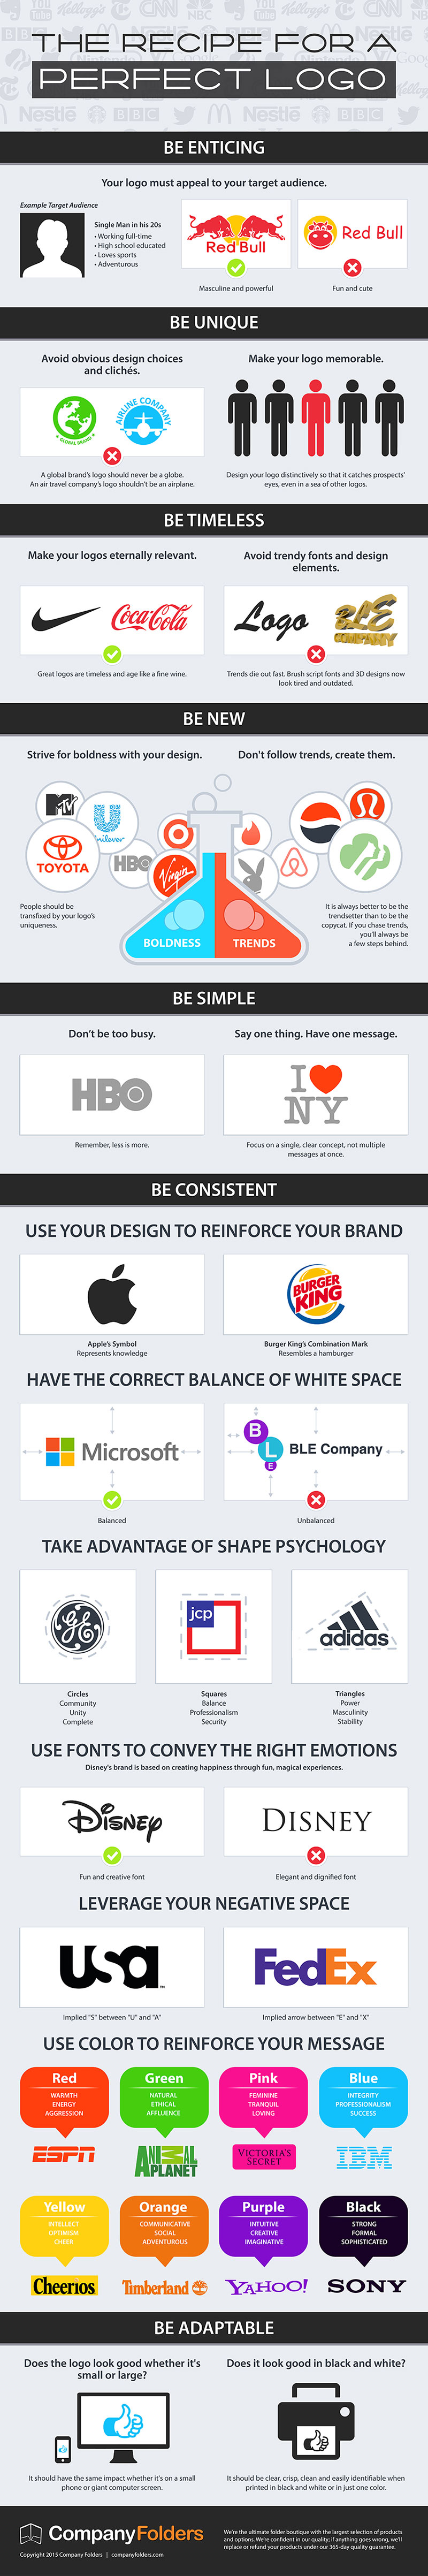 How to Design a Perfect Logo – Infographic